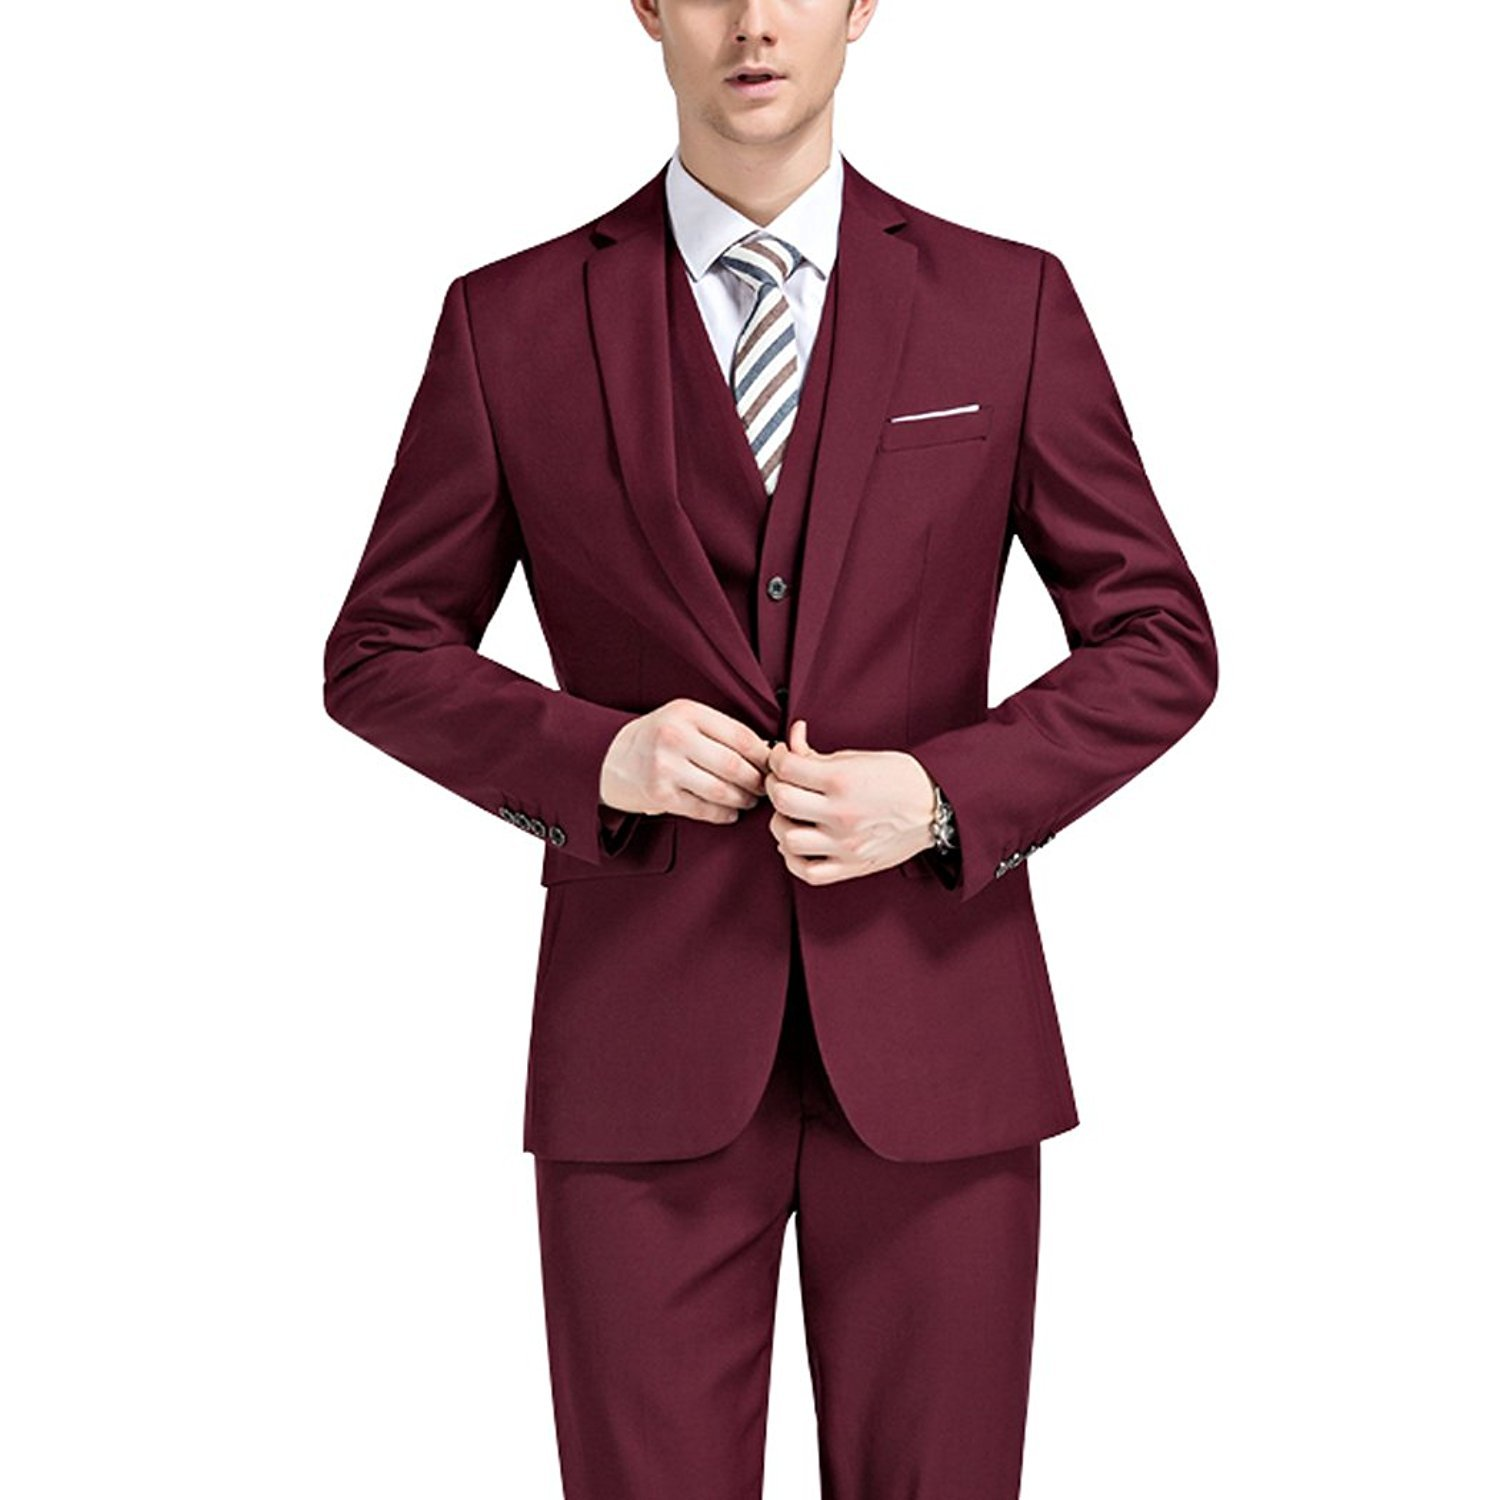 YSMO Men's Slim Burgundy 3-Piece Blazer Jacket & Vest & Pants Wedding Suits YSMO18051906